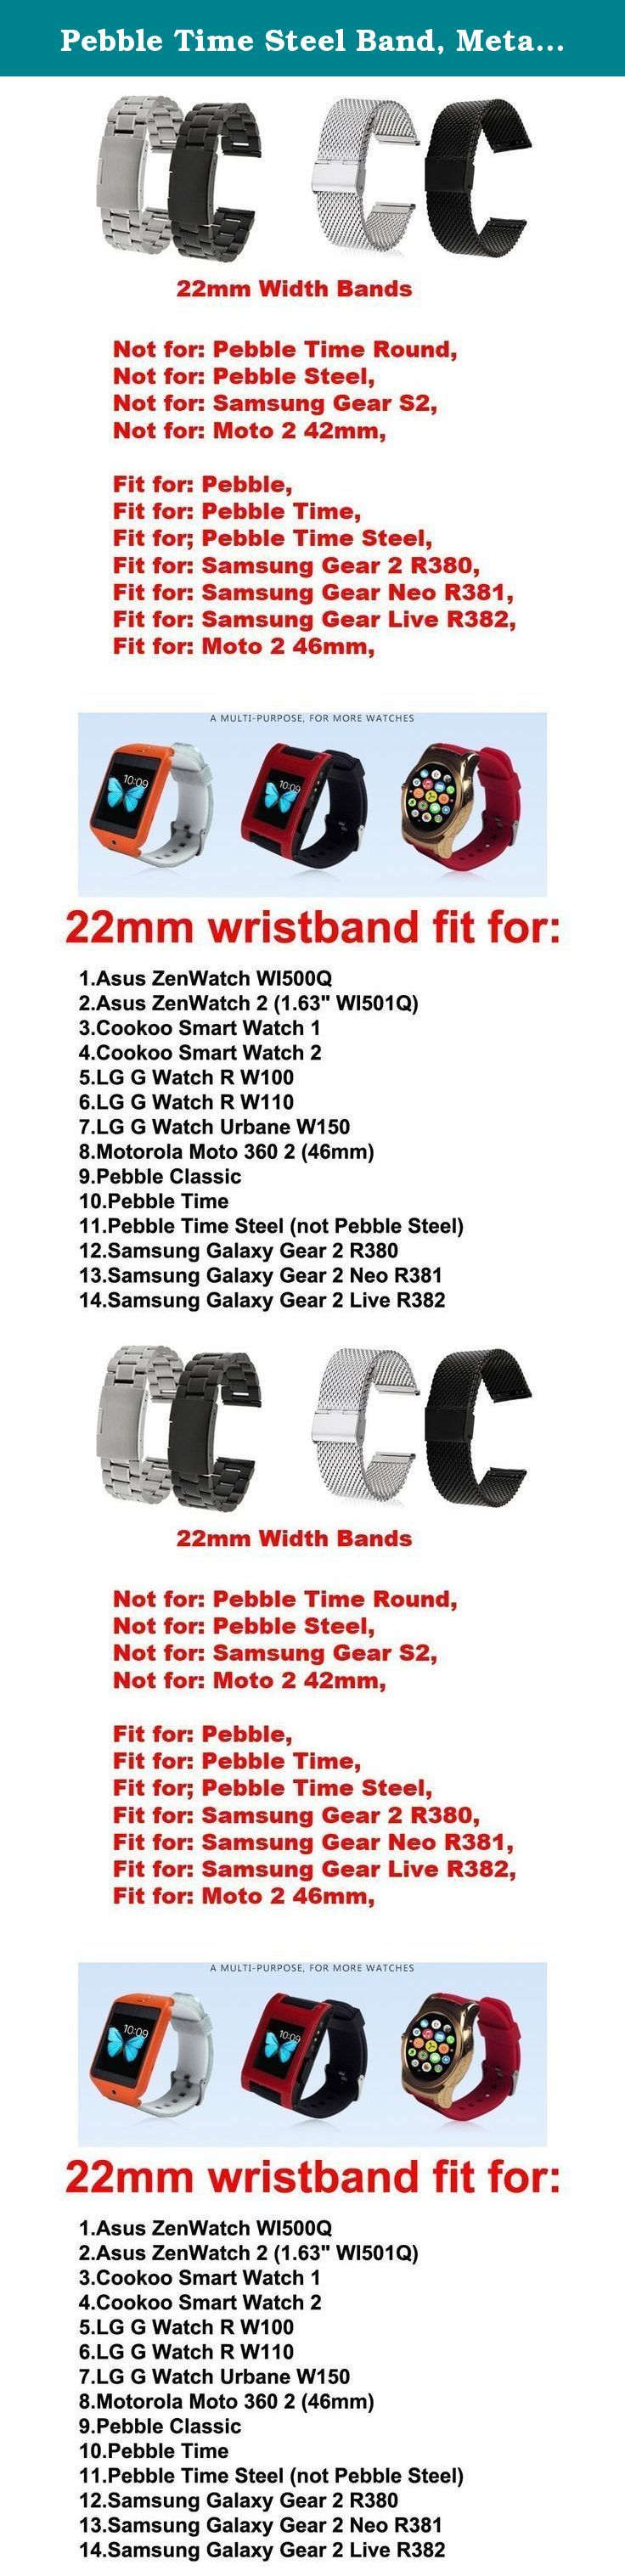 Pebble Time Steel Band, Metal, Replacement Stainless Steel Watch Strap for Pebble Time Steel (NOT Pebble Steel) Smart Watch /No Watch - 5zhuGolden. Metal Watchband/ Stainless Steel Strap fits for (Pebble Time Steel) Smart Watch, Please NOTE: Not Pebble Steel With Prefect workmanship, fashion design, comfortable feeling, stylish look, giving you noble wearing experience, easy to use, come with a set of tools Easy to install and remove; Width: 22mm; Length adjustable length; Best metal…